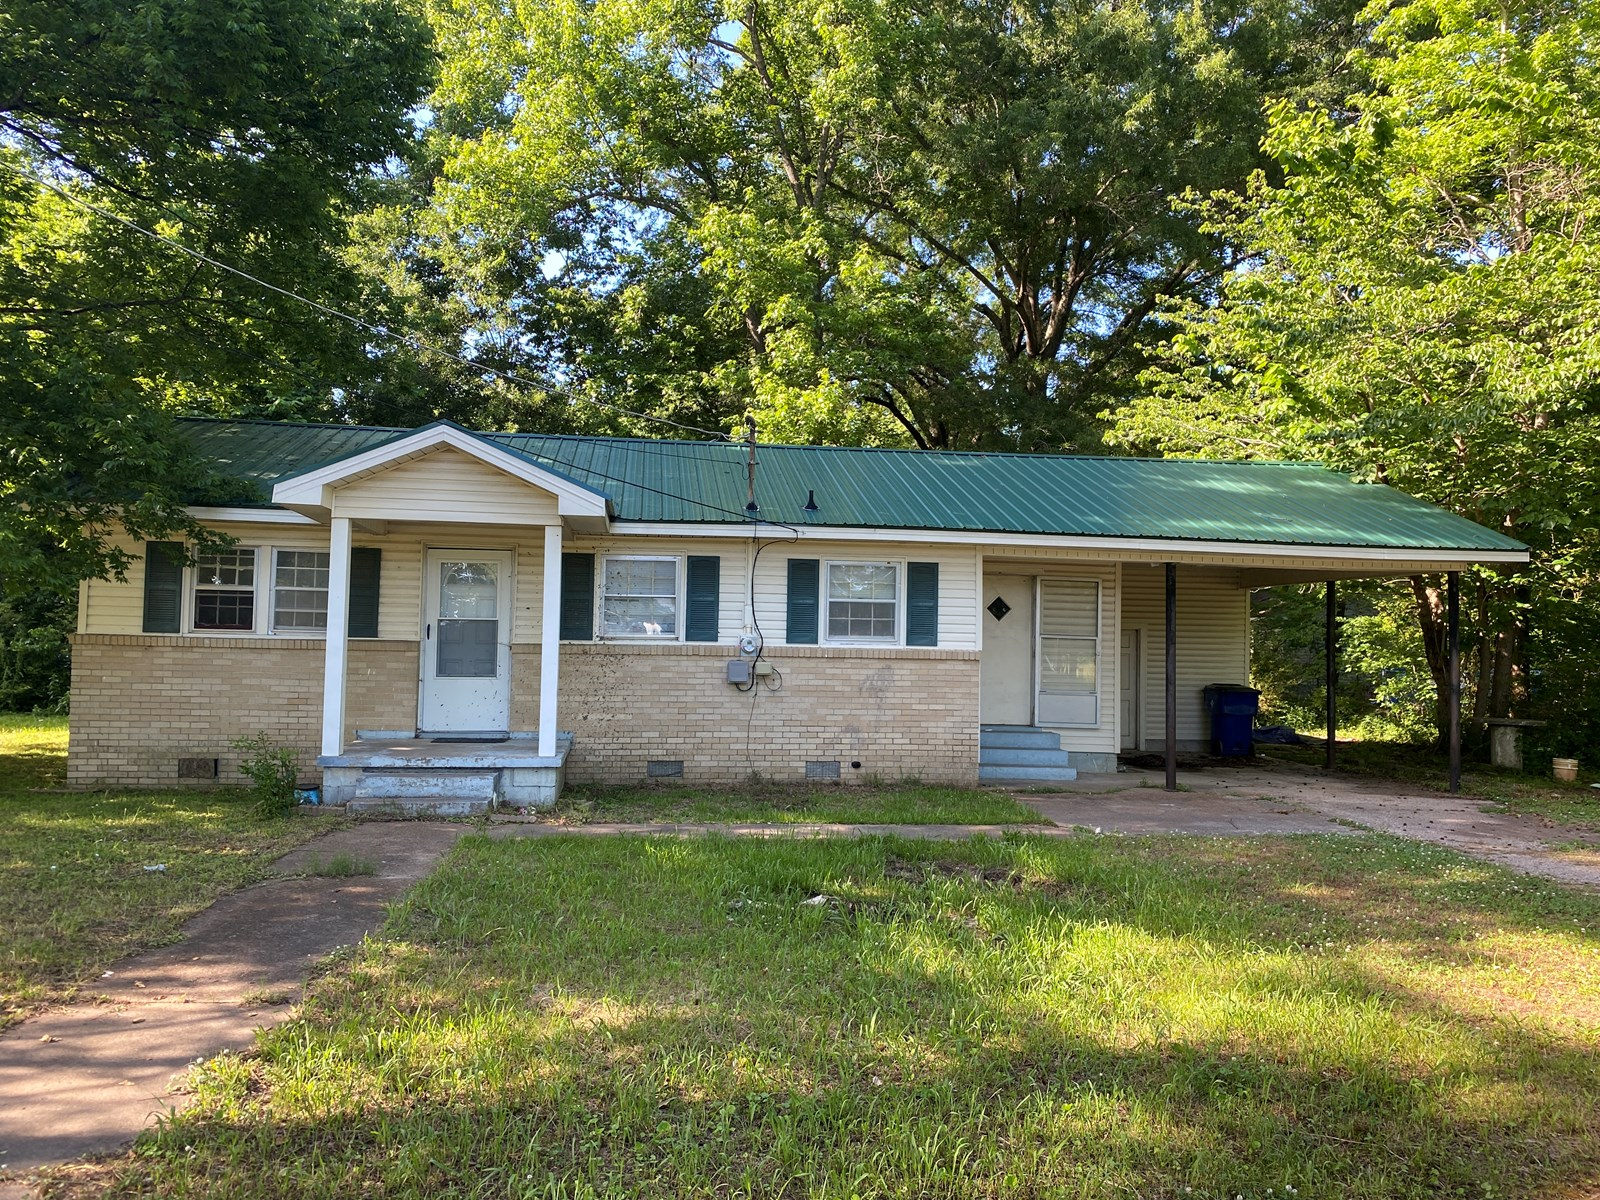 HOME FOR SALE IN SAVANNAH, TN, 2 BEDROOM HOME IN TOWN